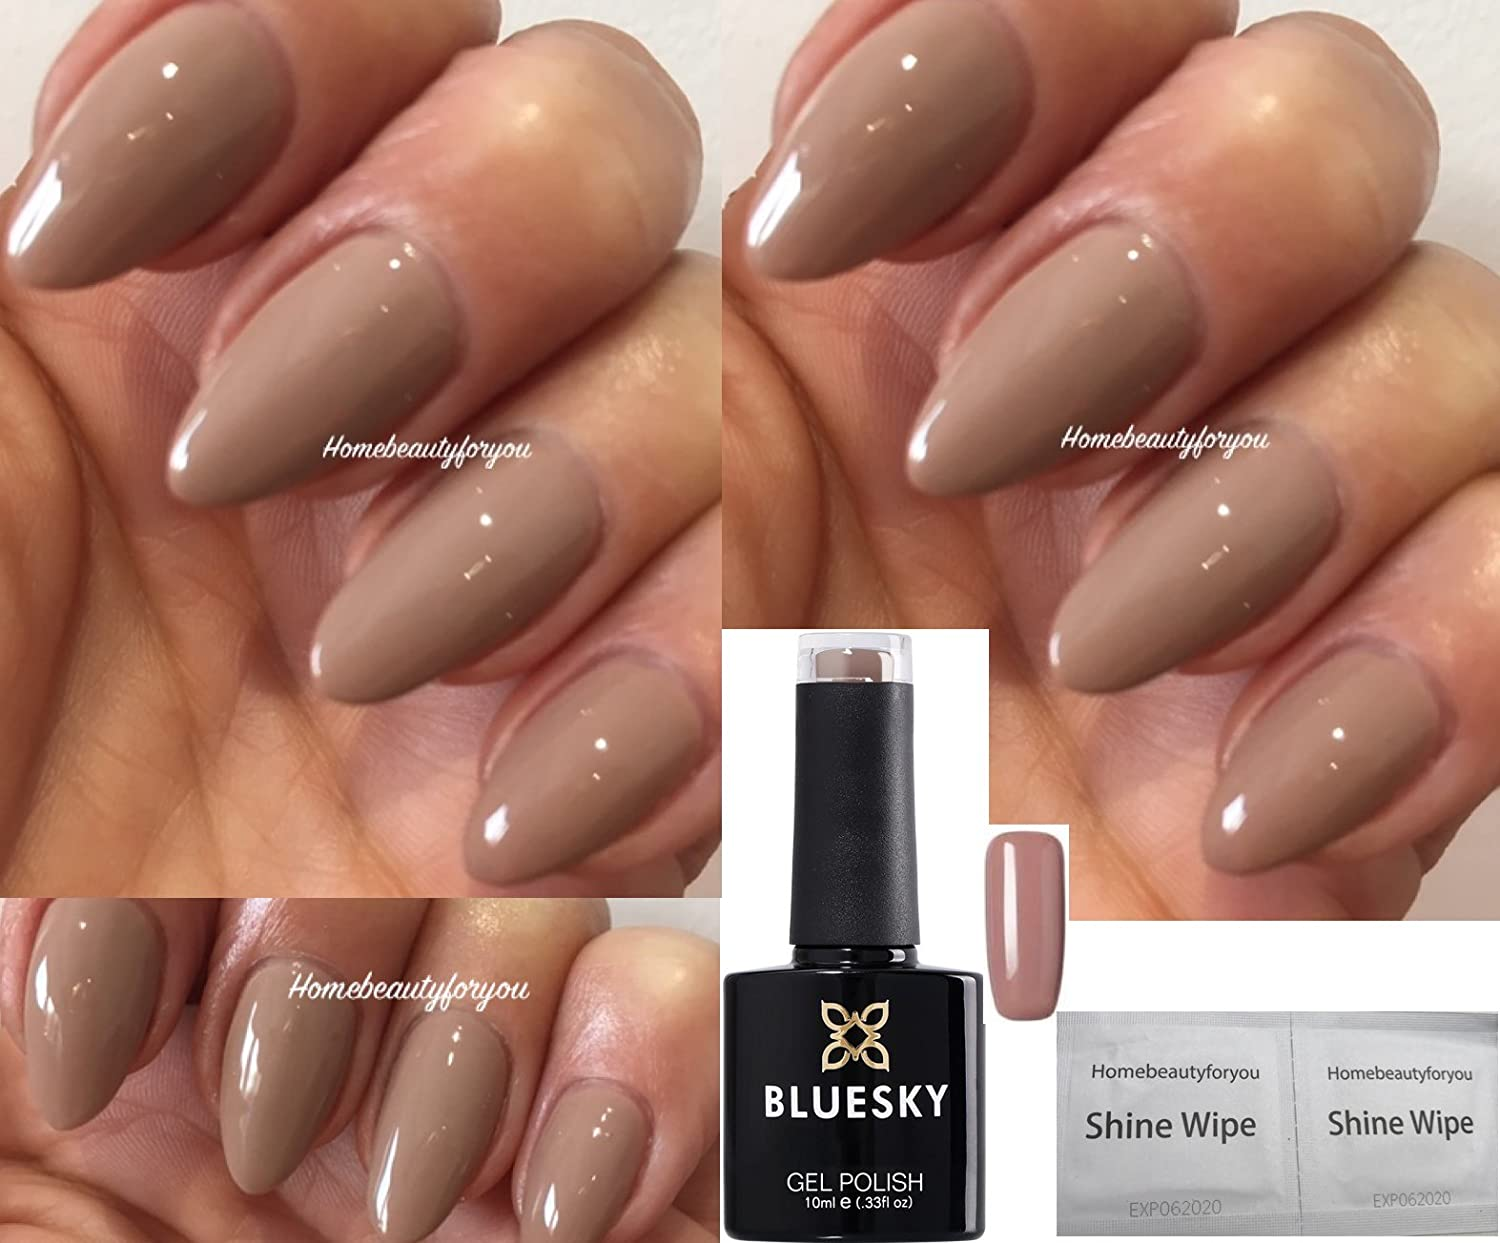 Bluesky 63922 Beige Tan Autumn Winter Nail Gel Polish UV LED Soak Off 10ml PLUS 2 Luvlinail Shine Wipes LTD